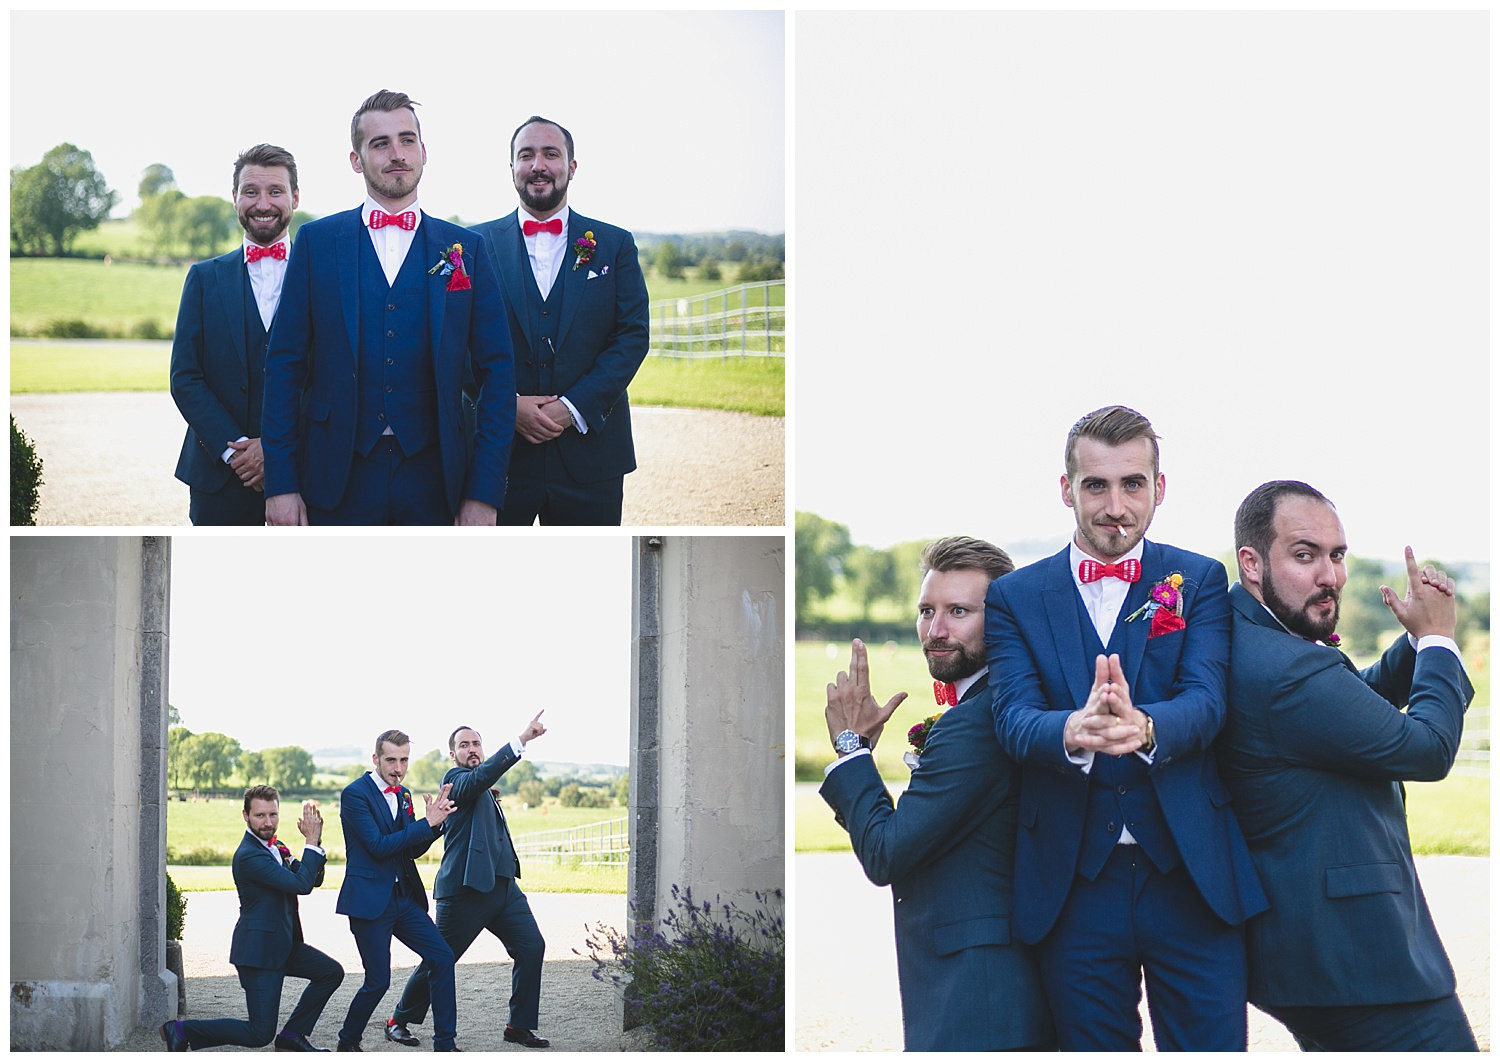 Groom and groomsmen doing fun silly poses